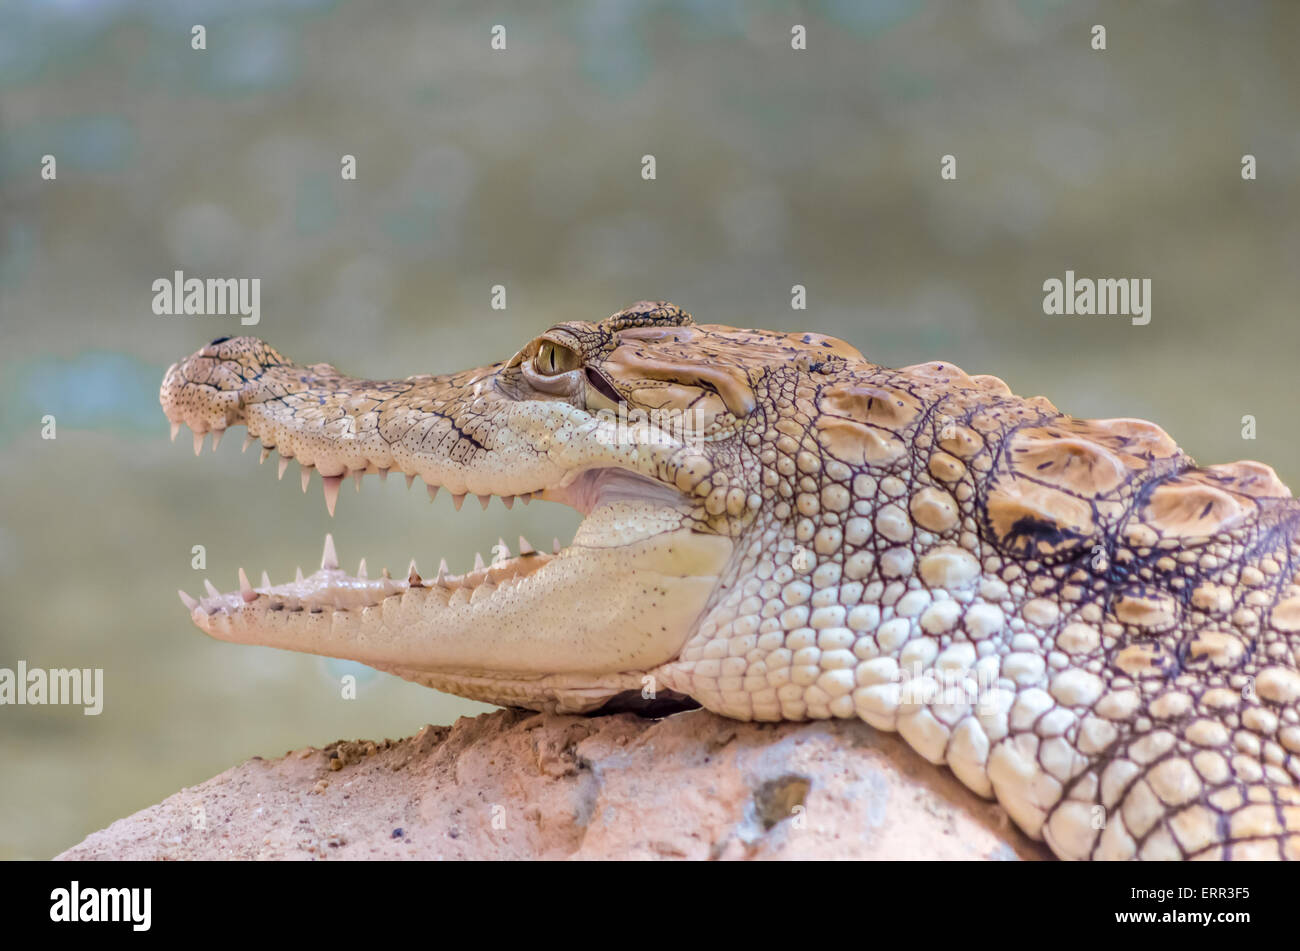 Close-up Of Young Alligator Alligator closeup on sand and rocks at zoo Stock Photo